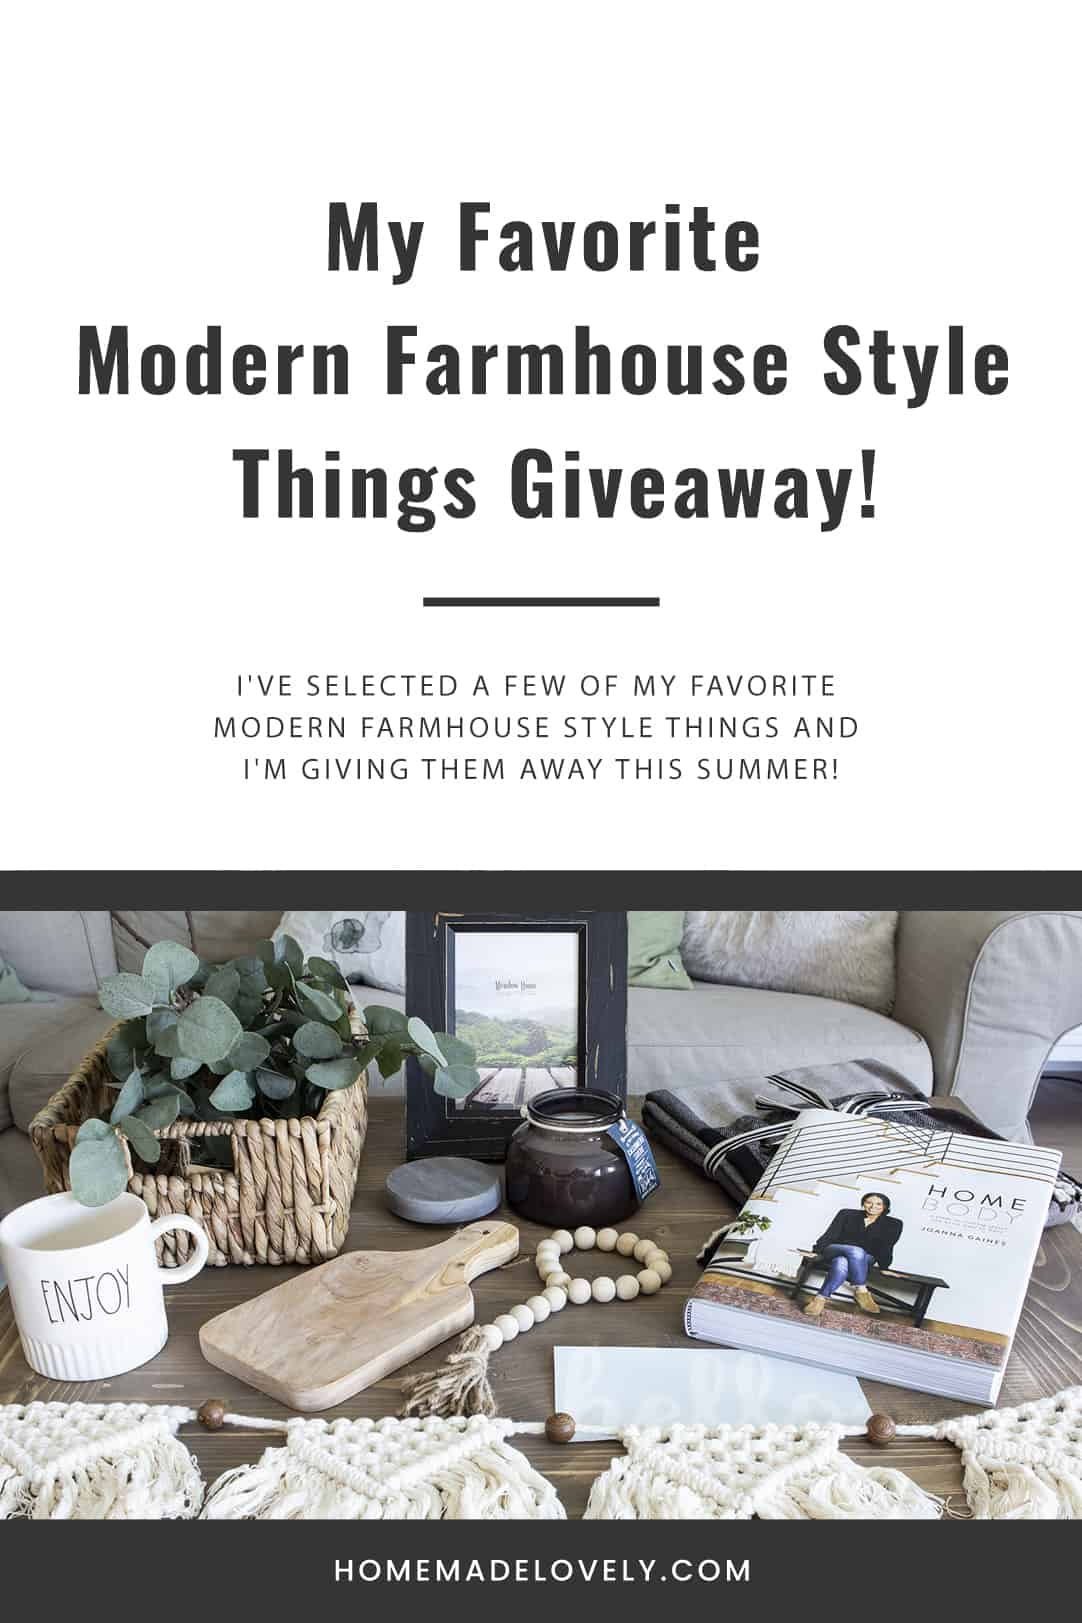 My Favorite Modern Farmhouse Style Things Giveaway